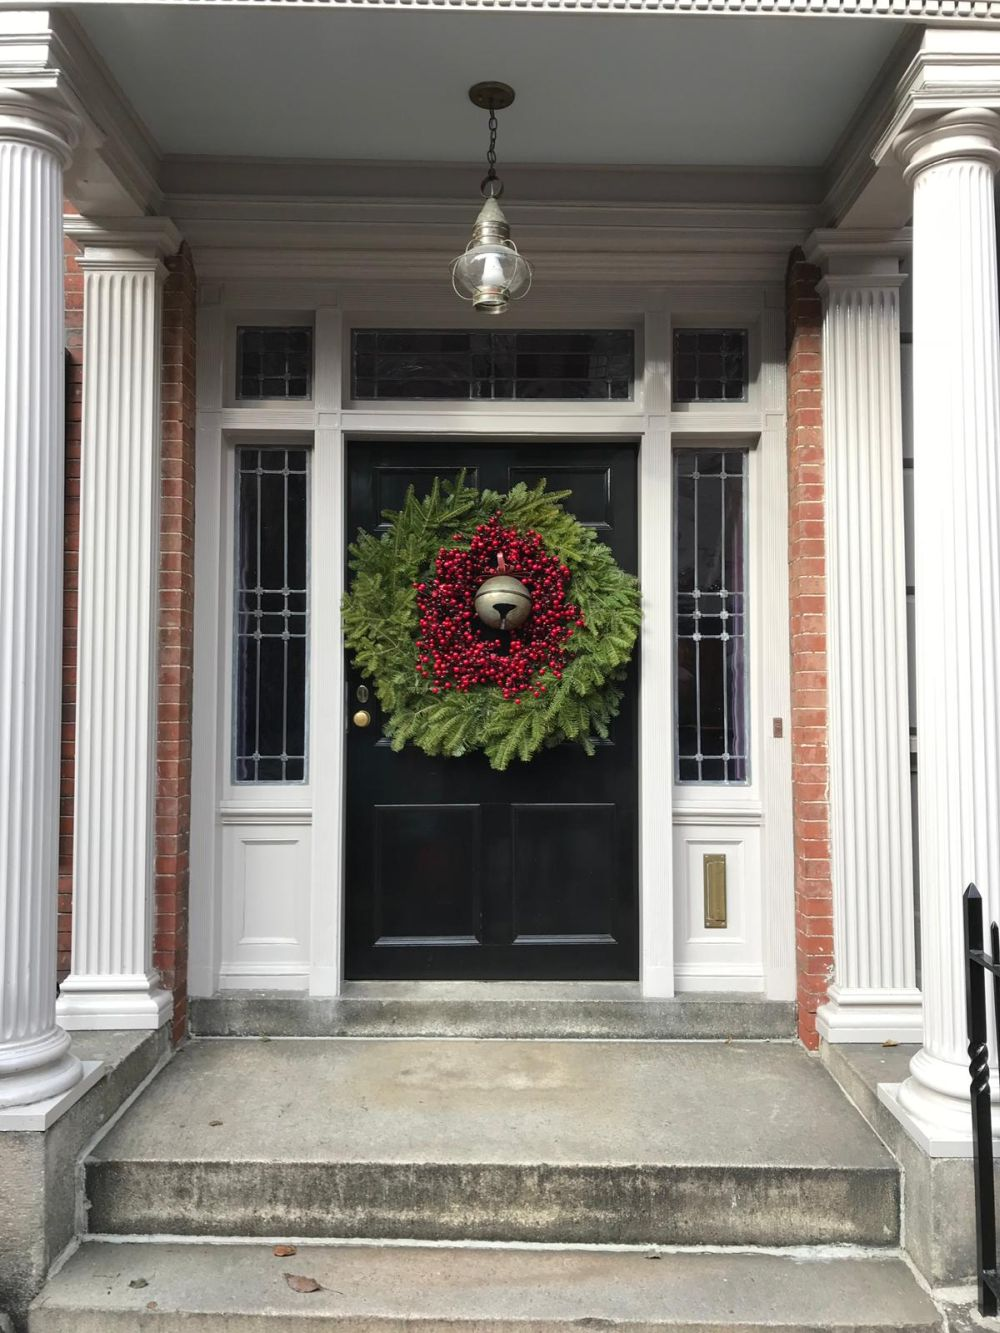 The wreath can be as small or as big as you want...just make sure it fits the door